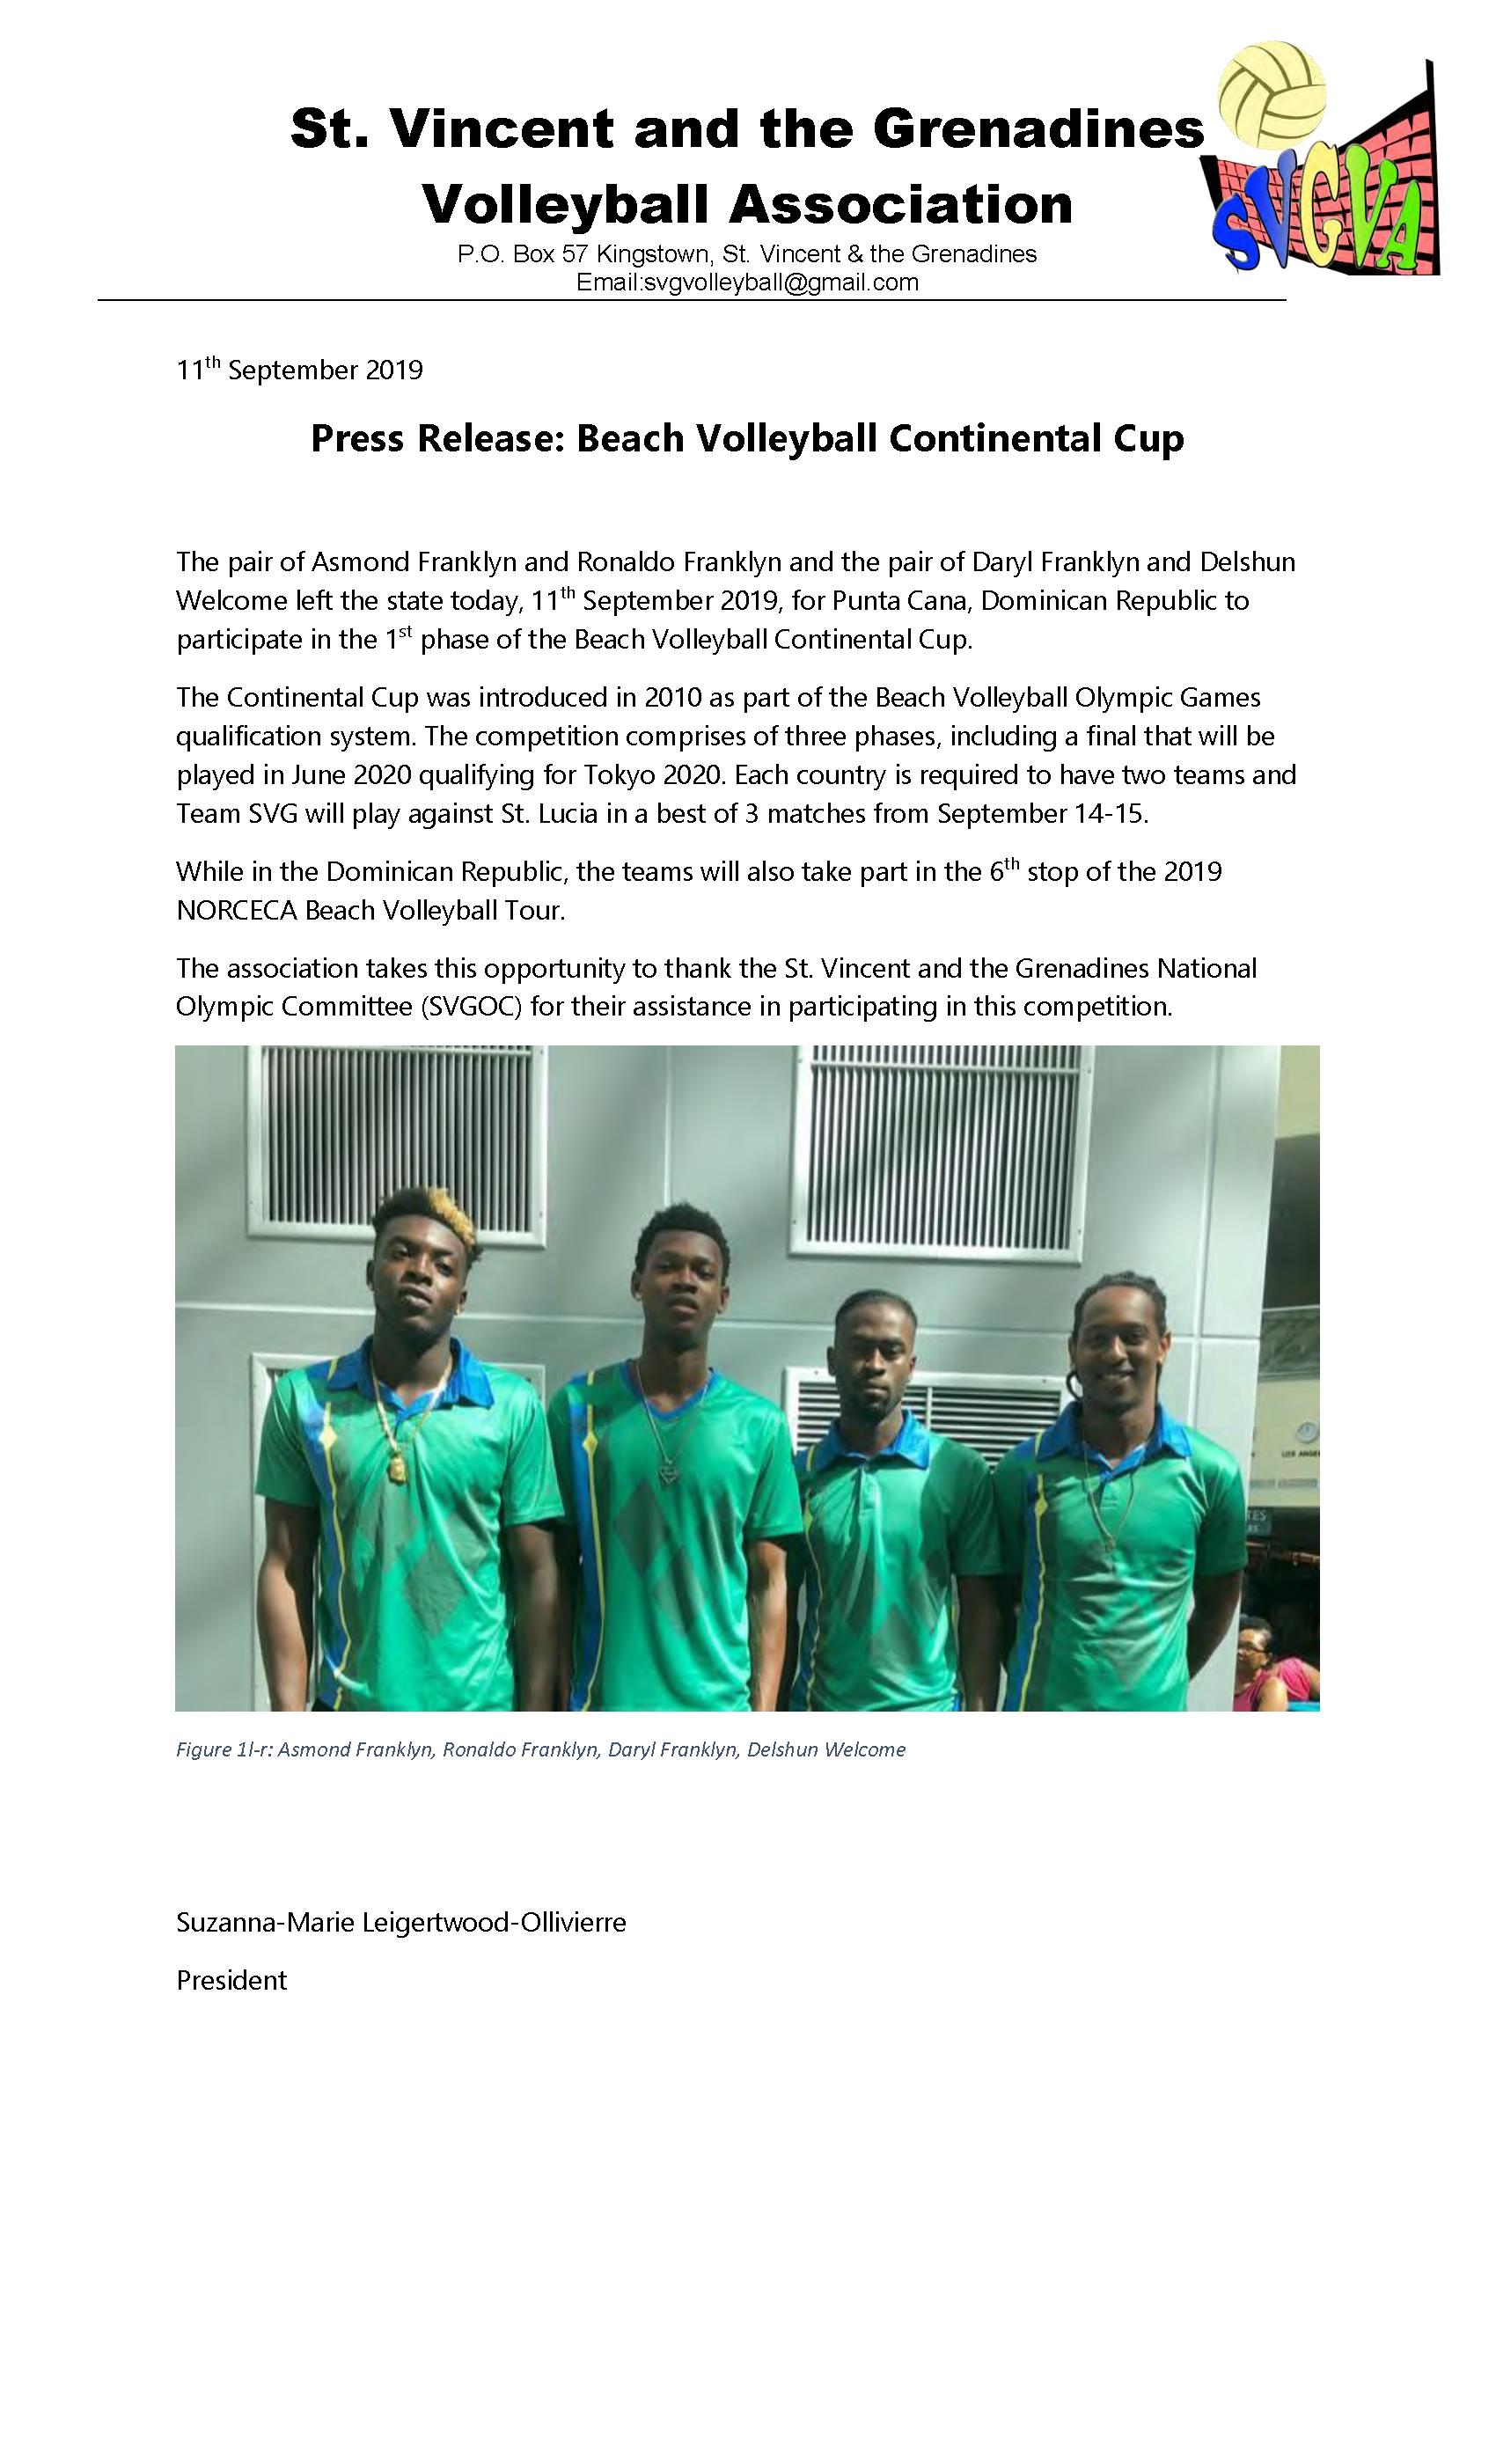 2019 Sep 11 Press Release - Beach Volleyball Continental Cup